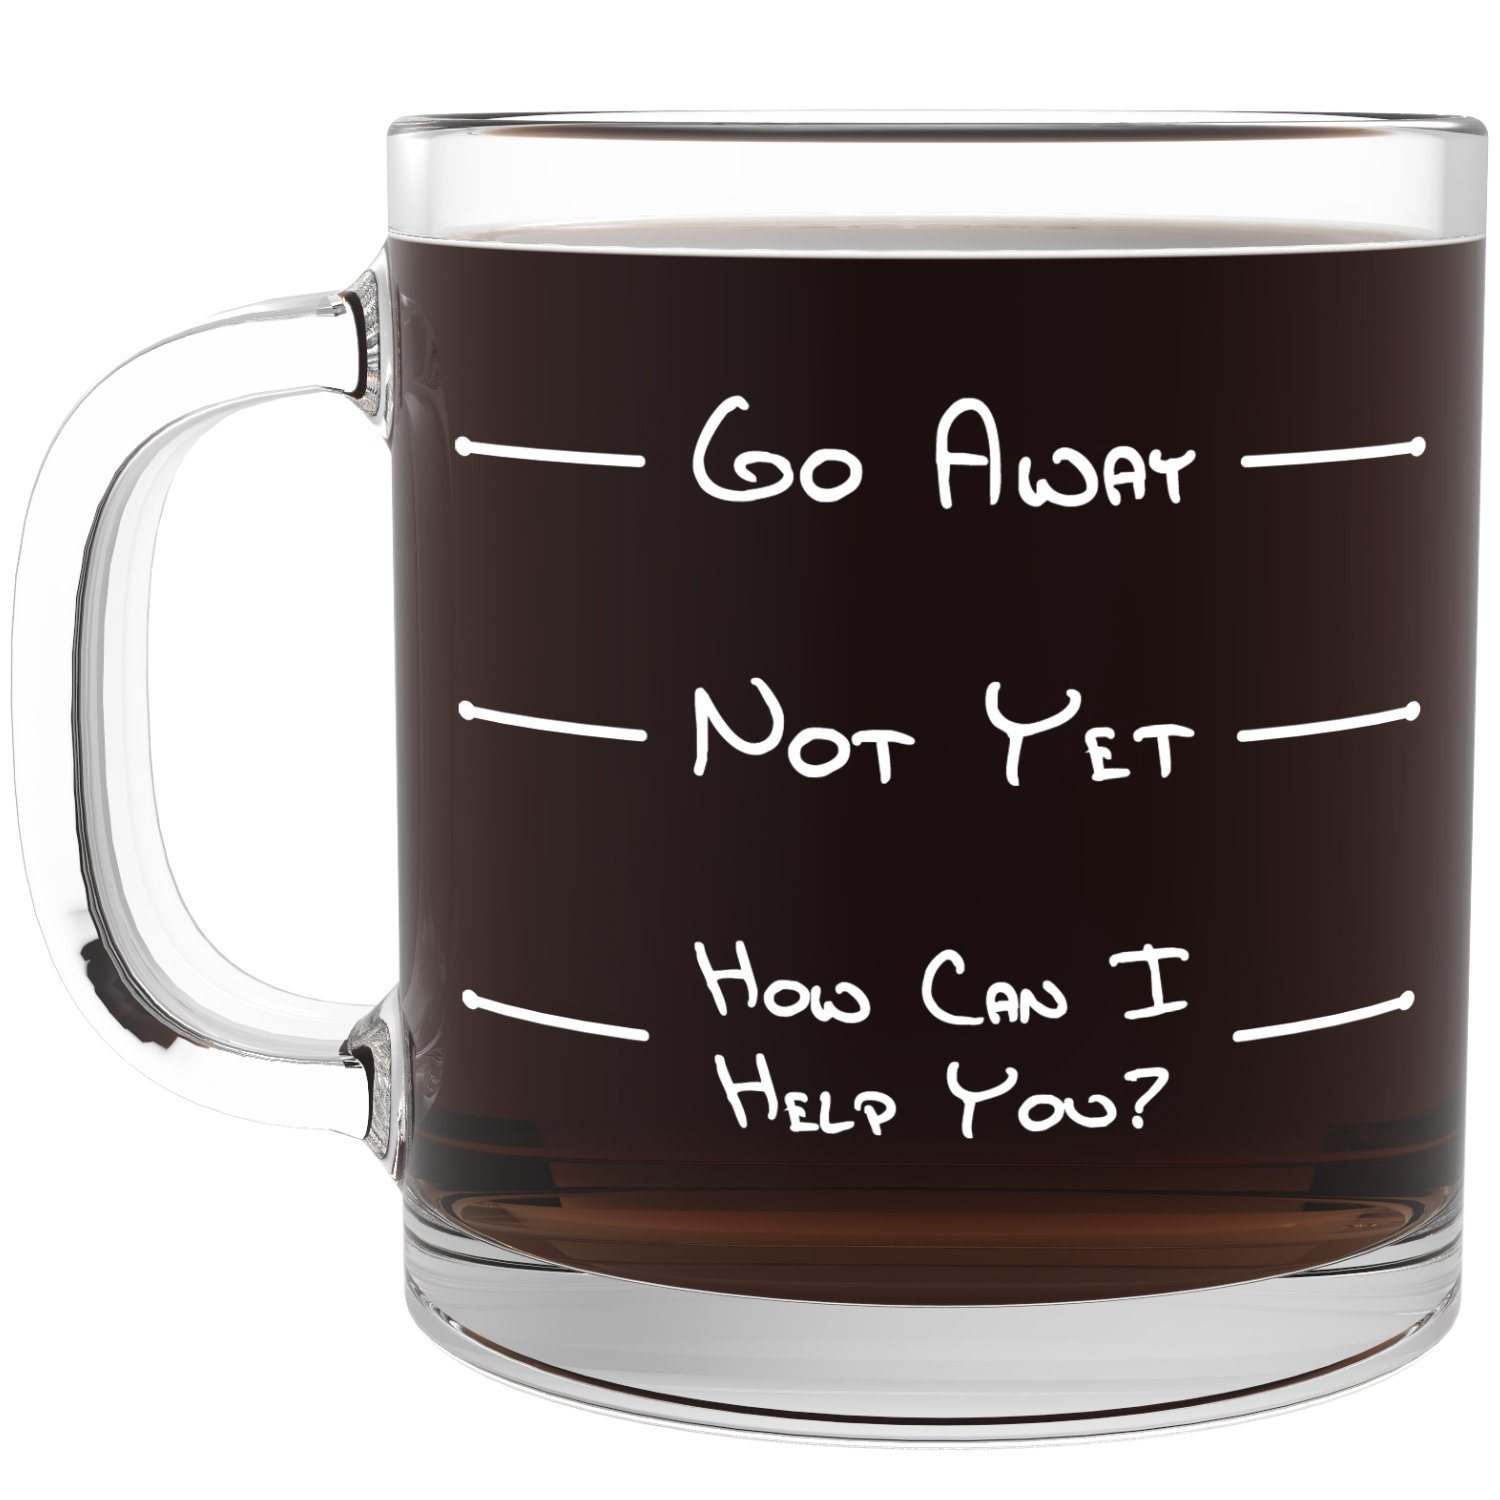 Go Away Glass Coffee Mug Cooking Gizmos